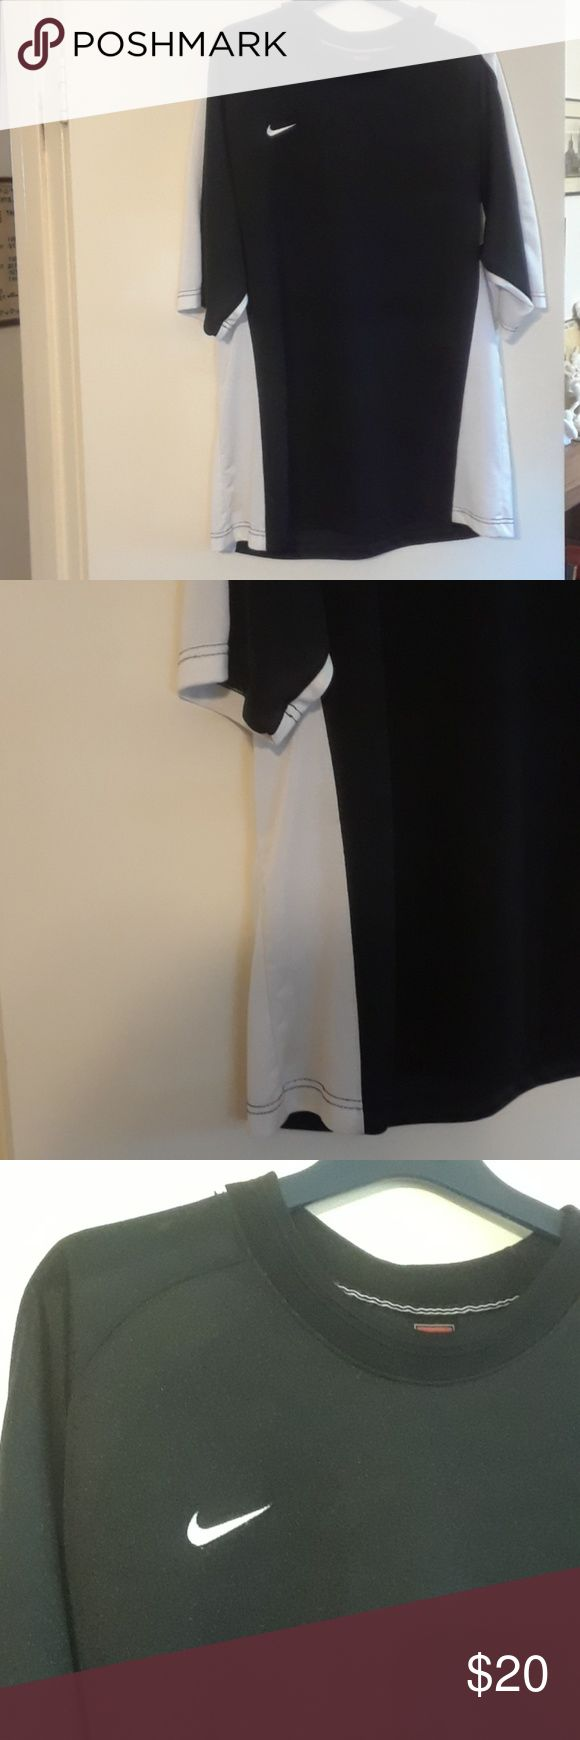 Men's Nike Workout Shirt Black with white stripe down both sides and on sleeves.  Excellent condition with one small pick on back of right sleeve. From smoke free home. Nike Shirts